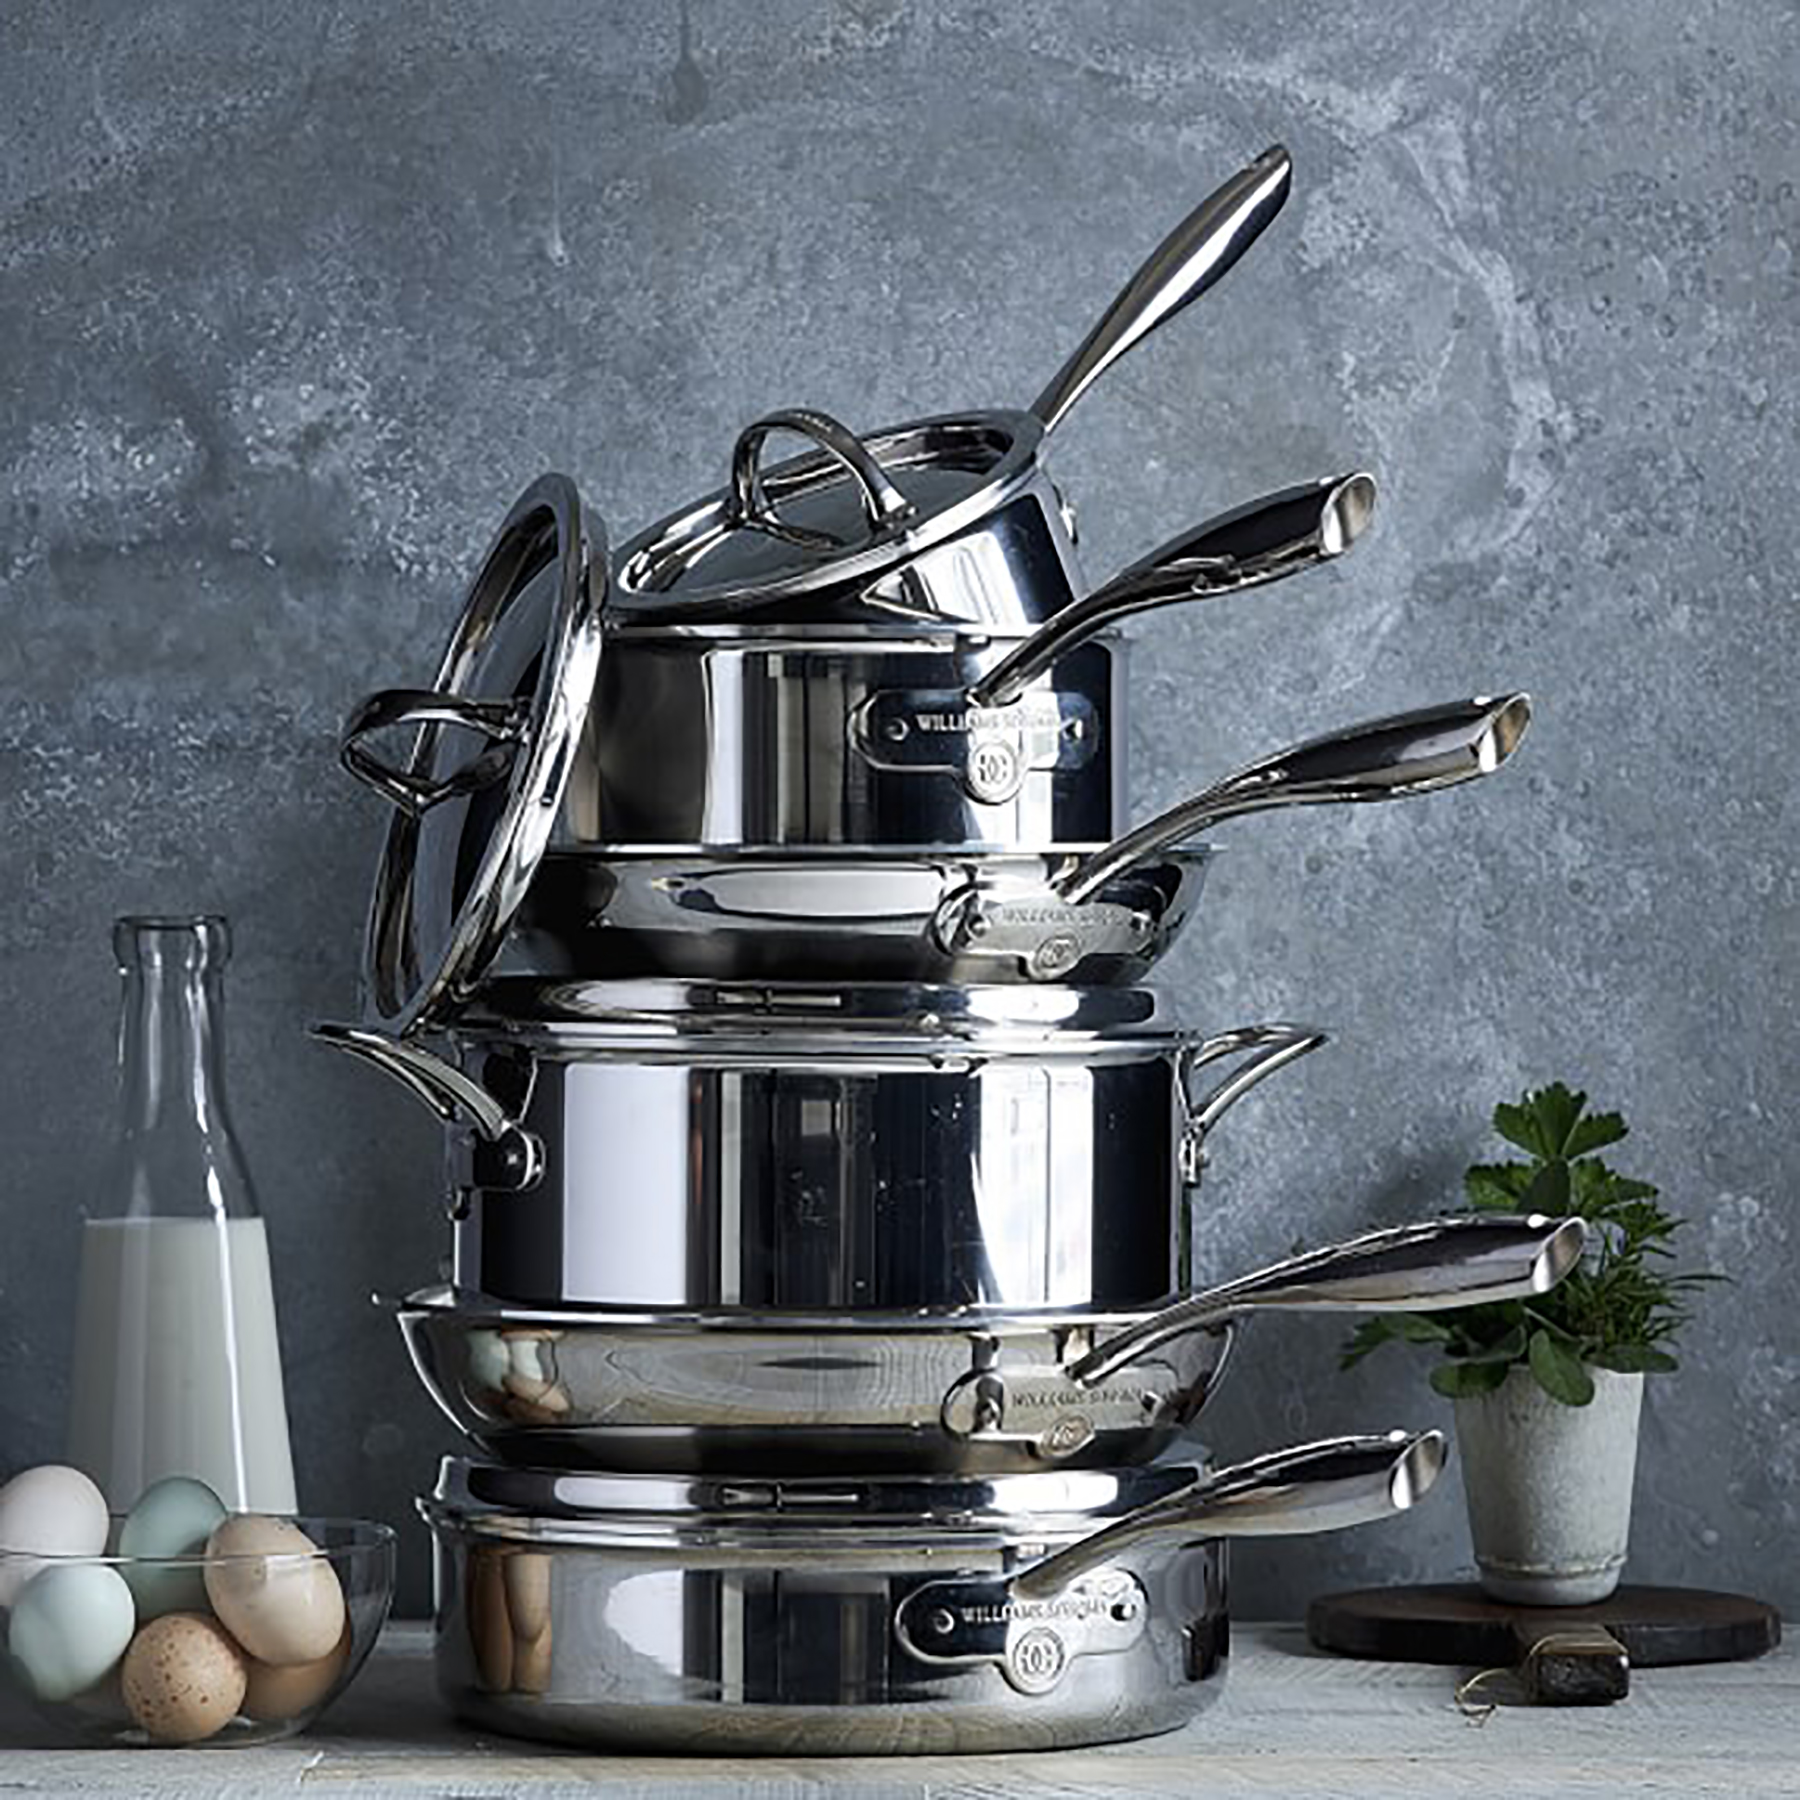 Williams Sonoma Thermo-Clad Stainless-Steel 10-Piece Cookware Set